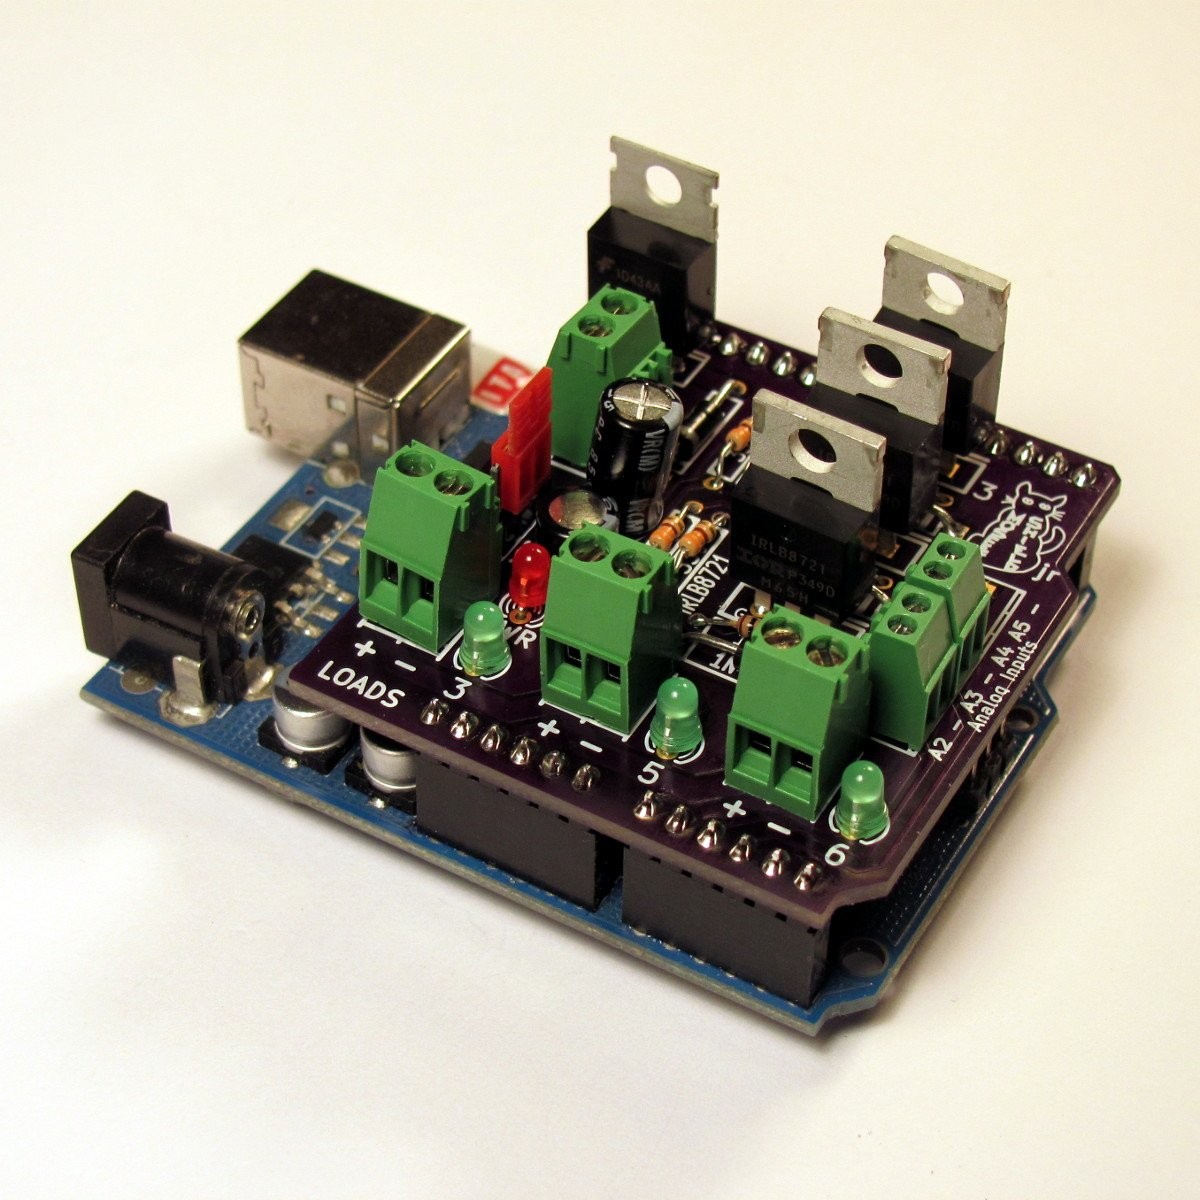 Mosfet jr arduino shield kit from makersbox on tindie